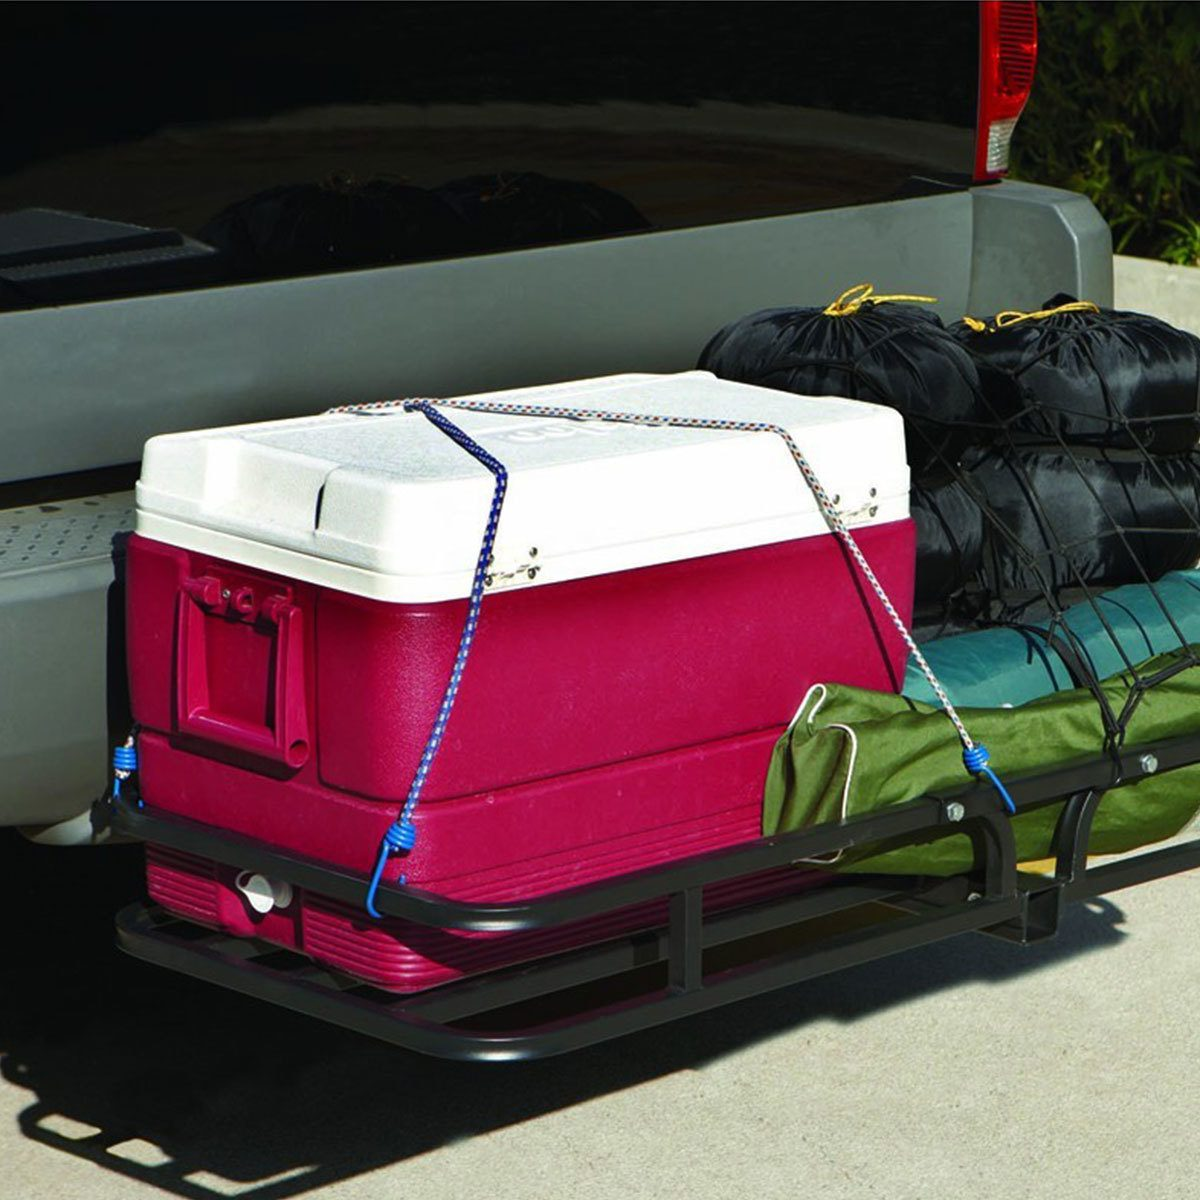 Garage Flooring Harbor Freight 20 Genius Camping Gear Items You Can Find At Harbor Freight The